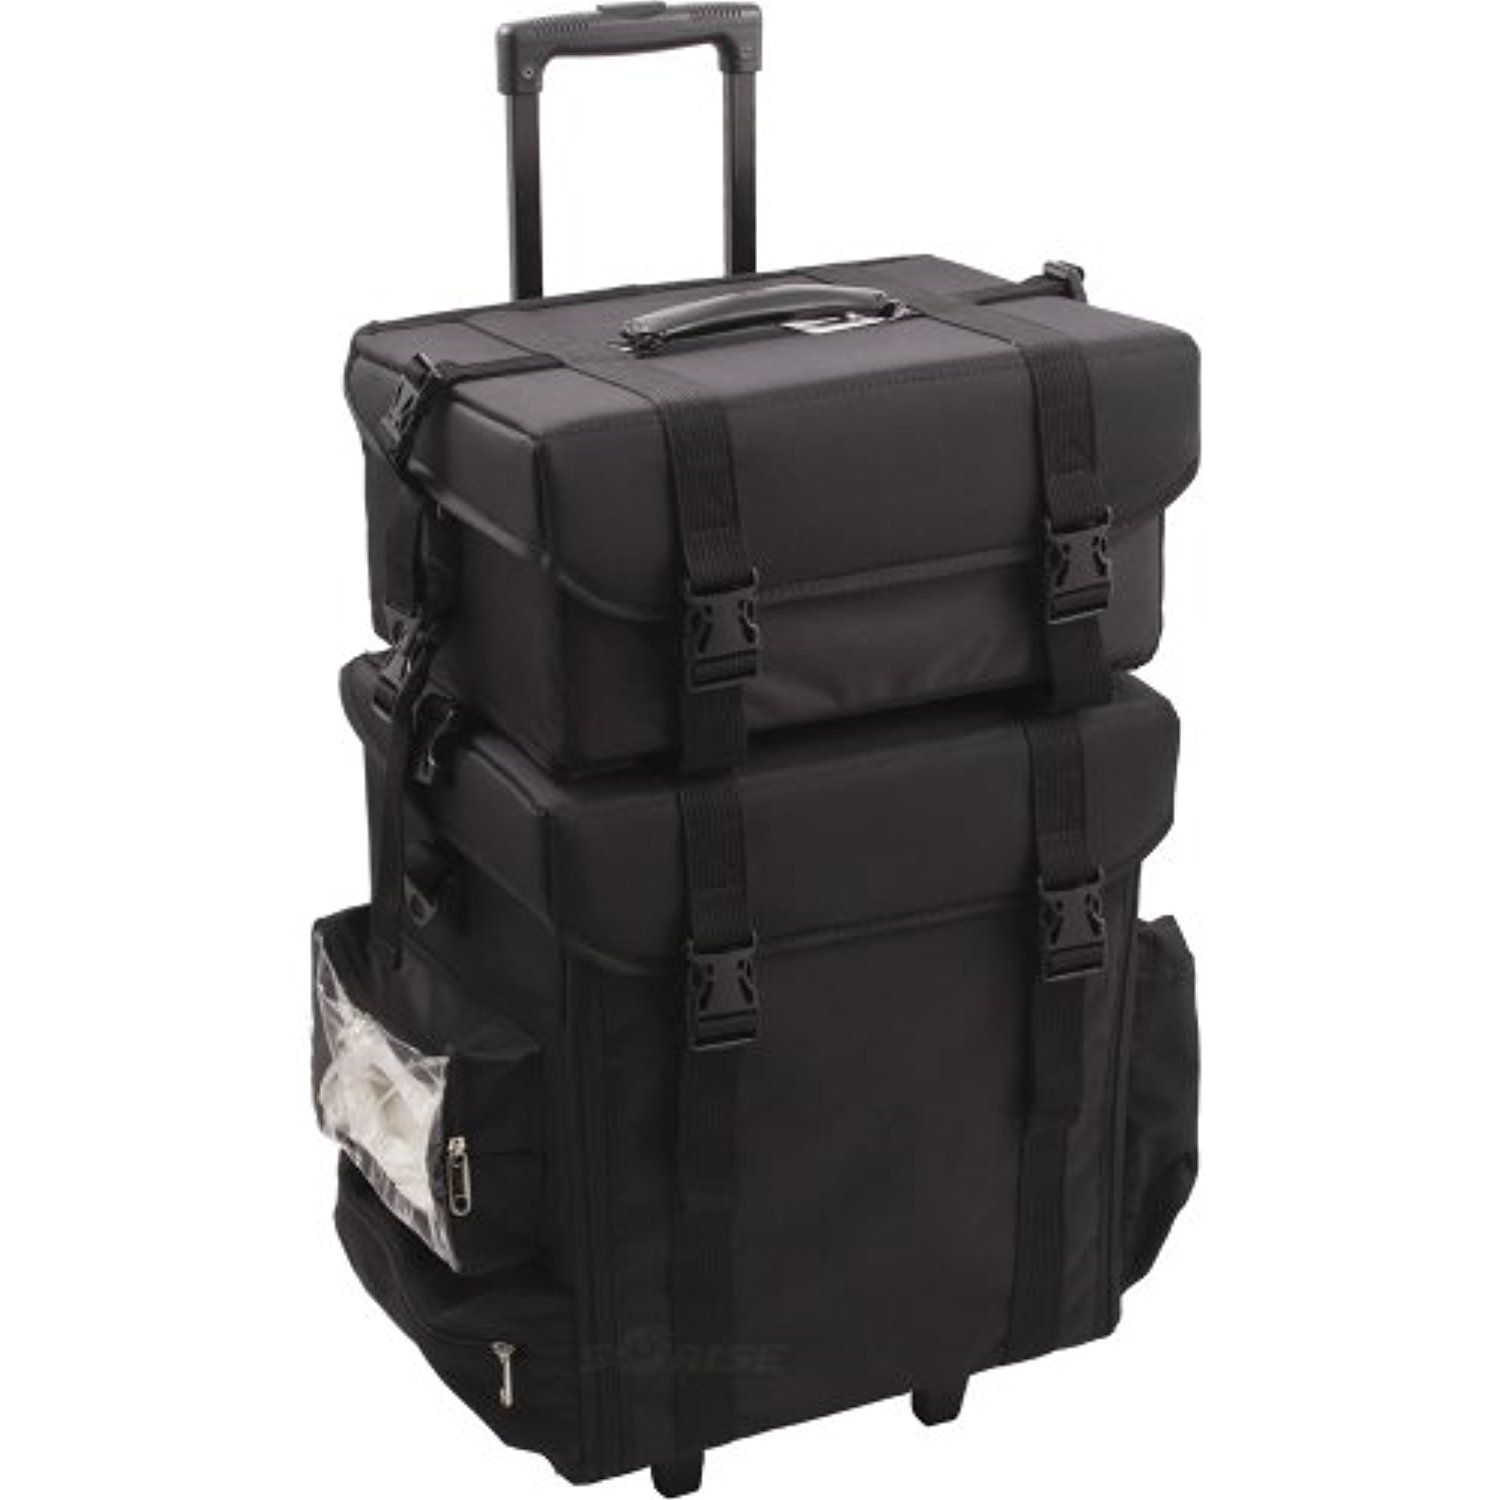 of suitcase vintage more luggage f furniture collectibles polished accents by suitcases trunks heston stack id home drawers aluminium aircraft the at master with co